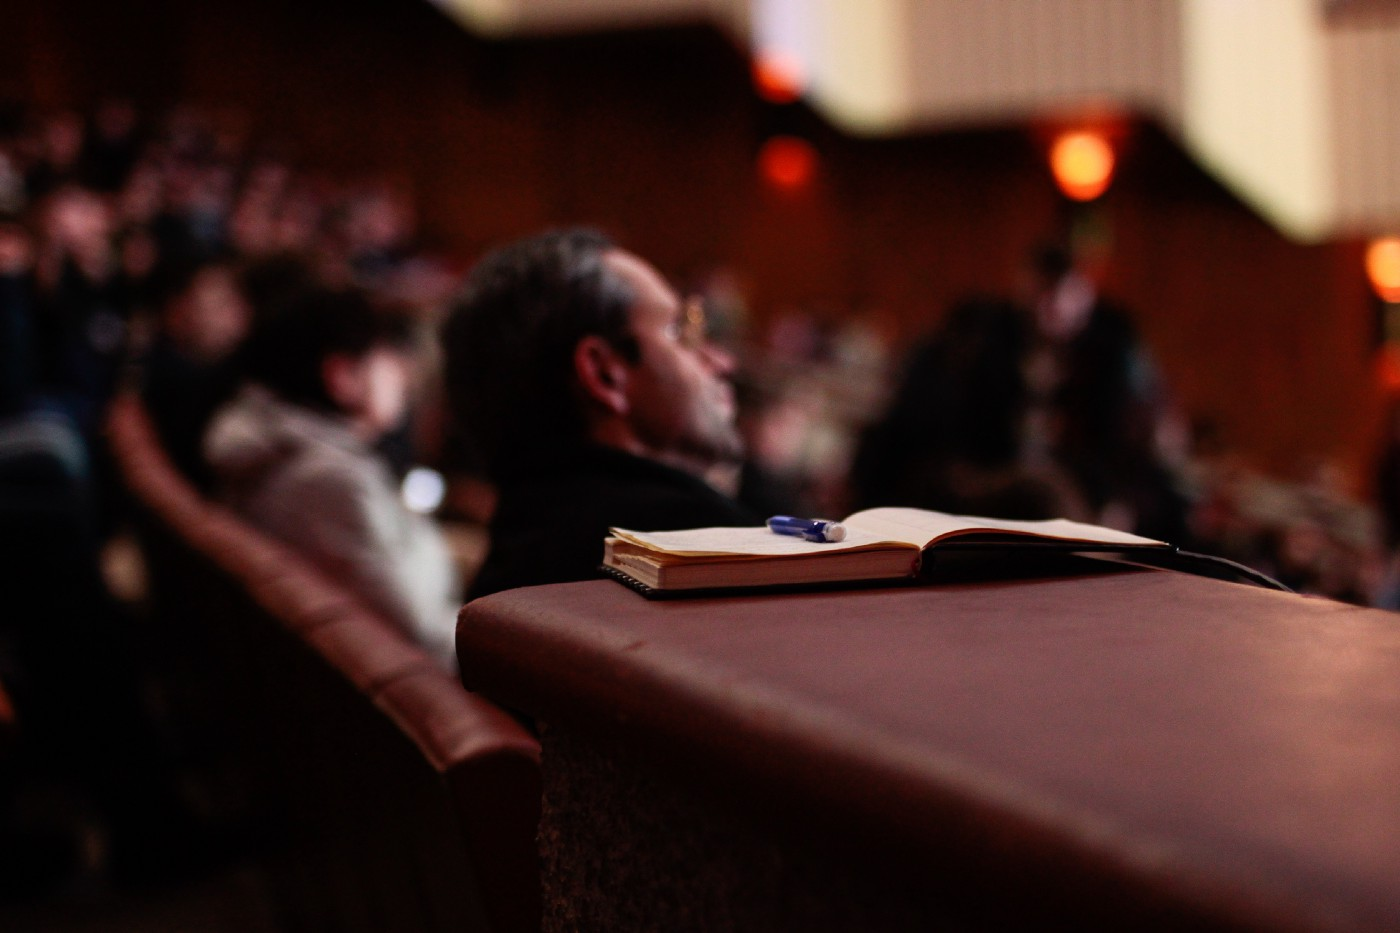 How to Navigate an Academic Conference An Introvert's Reflections by Fareha Iqtidar Khan